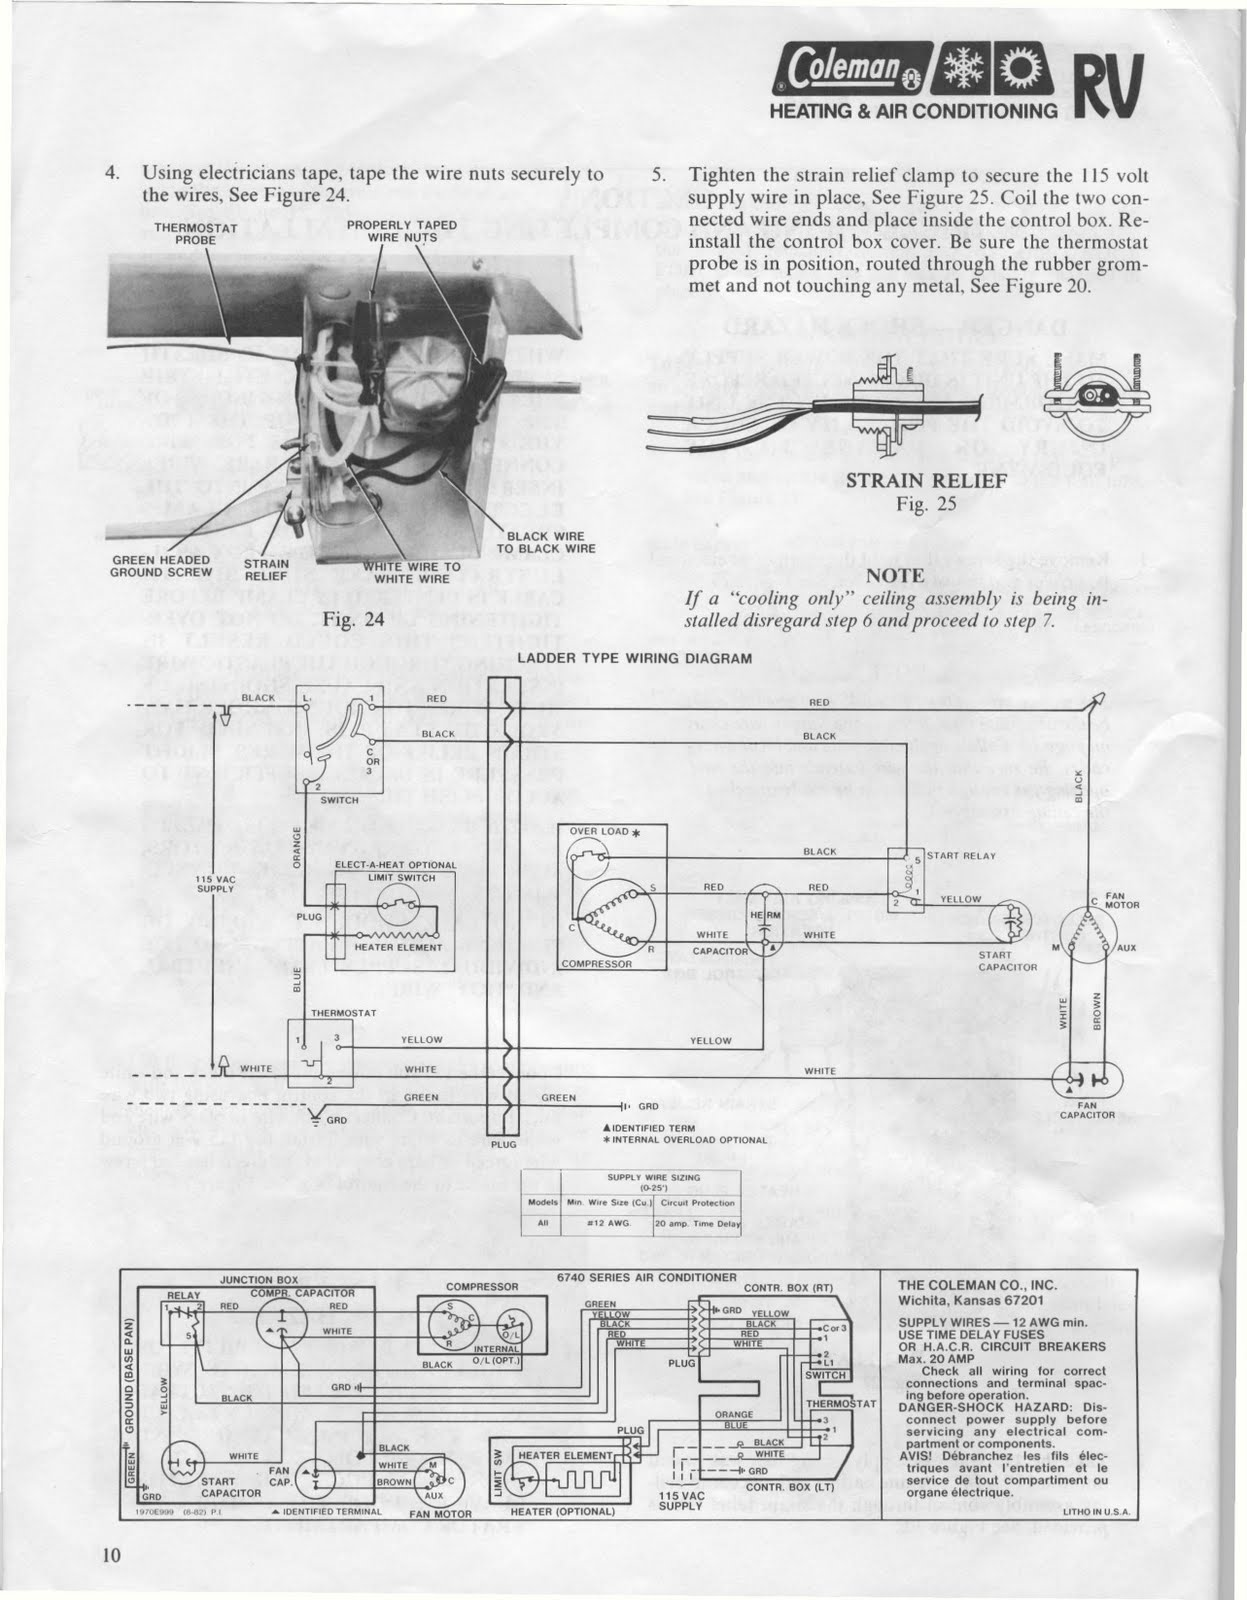 Duo Therm Ac Thermostat Wiring Diagram Pontiac Montana Radio 3107541 009 Imageresizertool Com